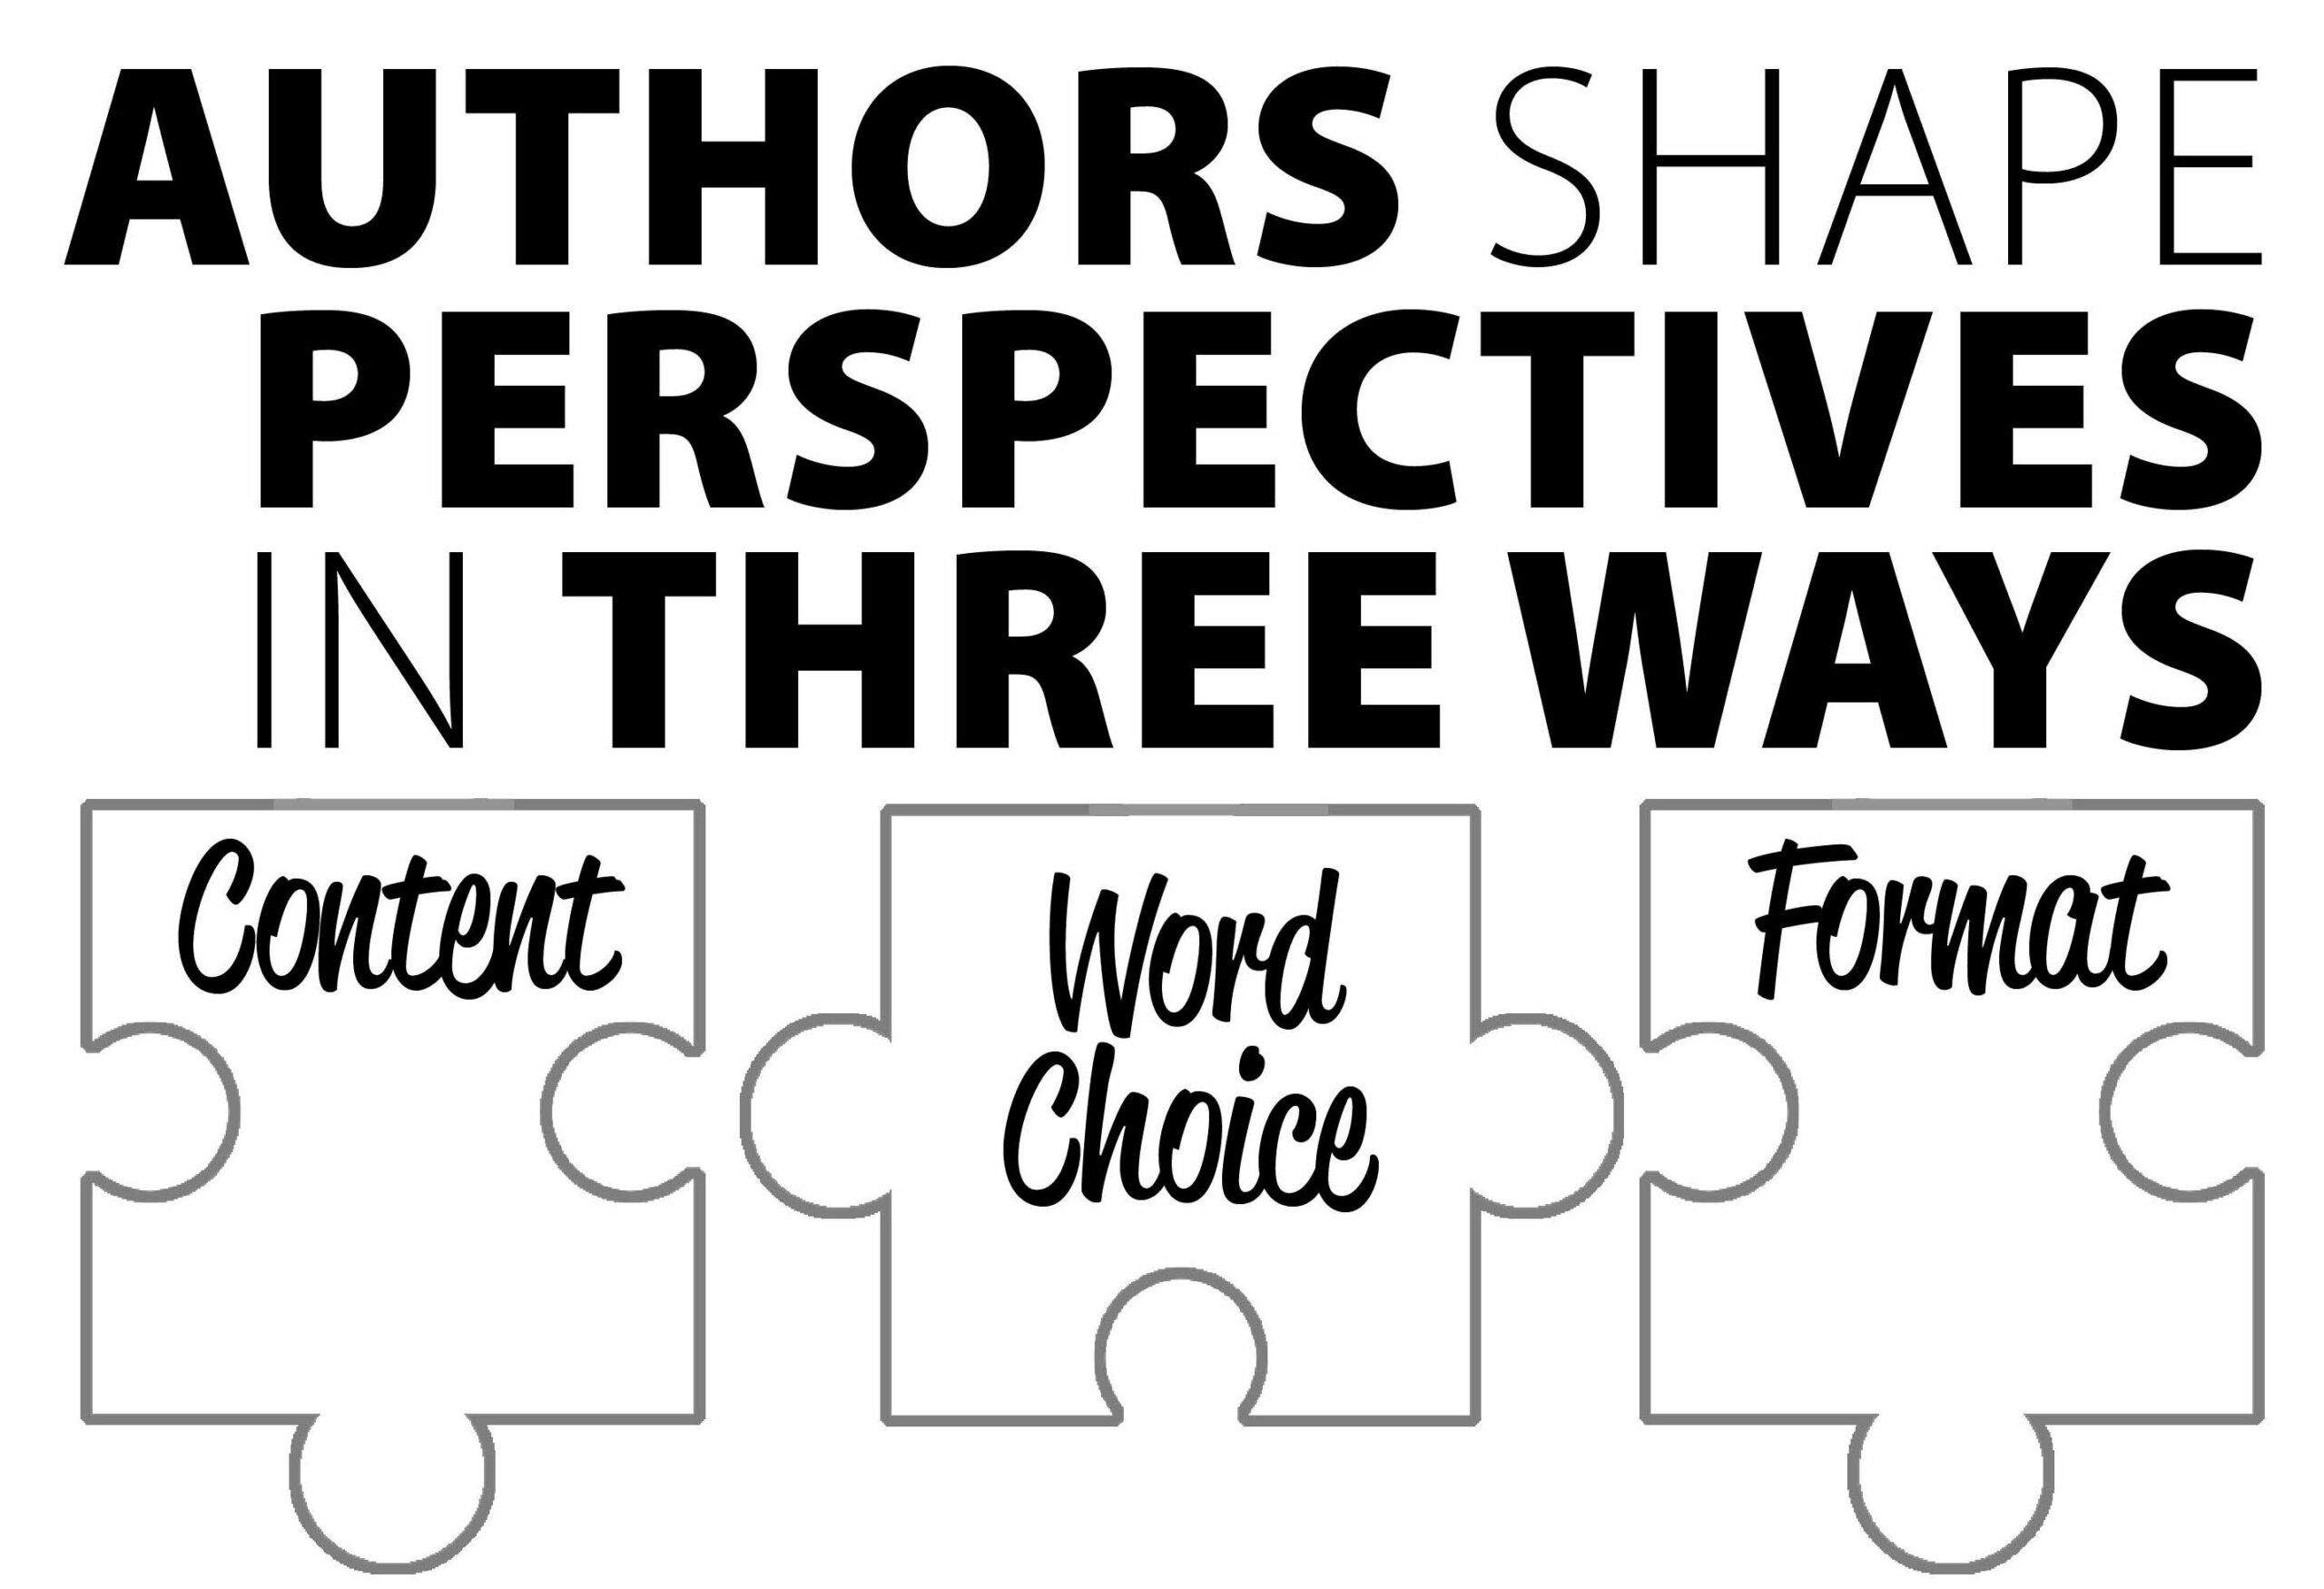 Authors shape perspective in 3 ways